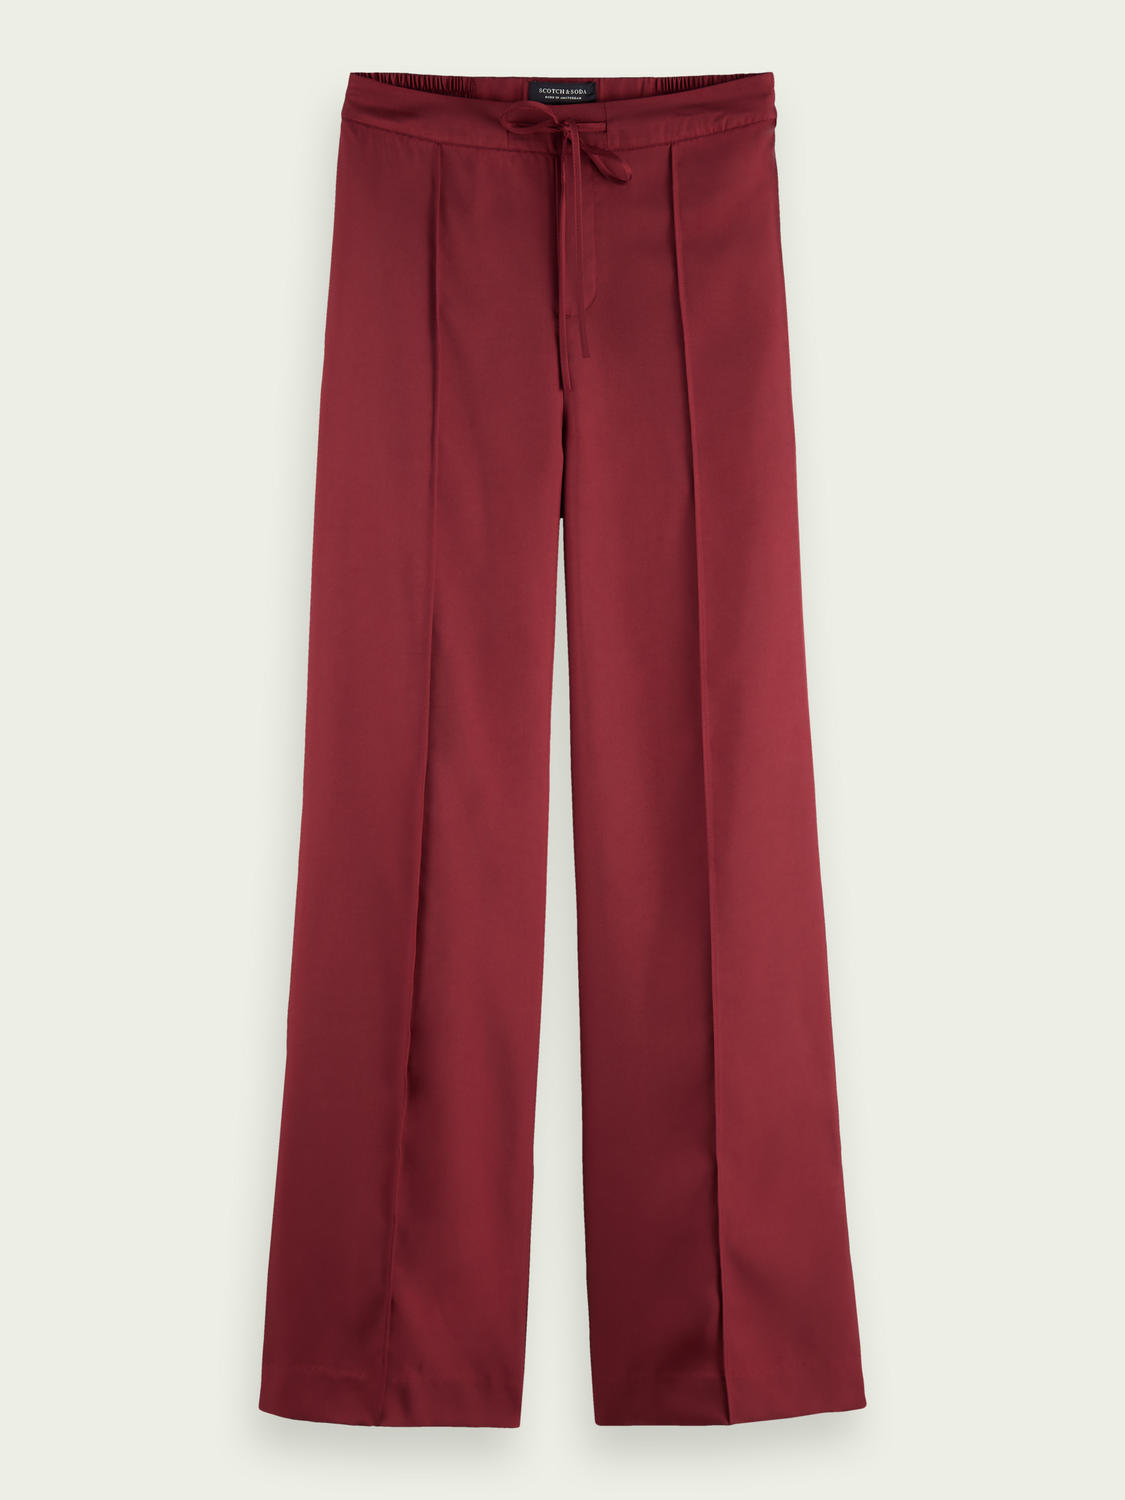 Scotch & Soda Storefront catalog Twill wide-leg mid-rise trousers